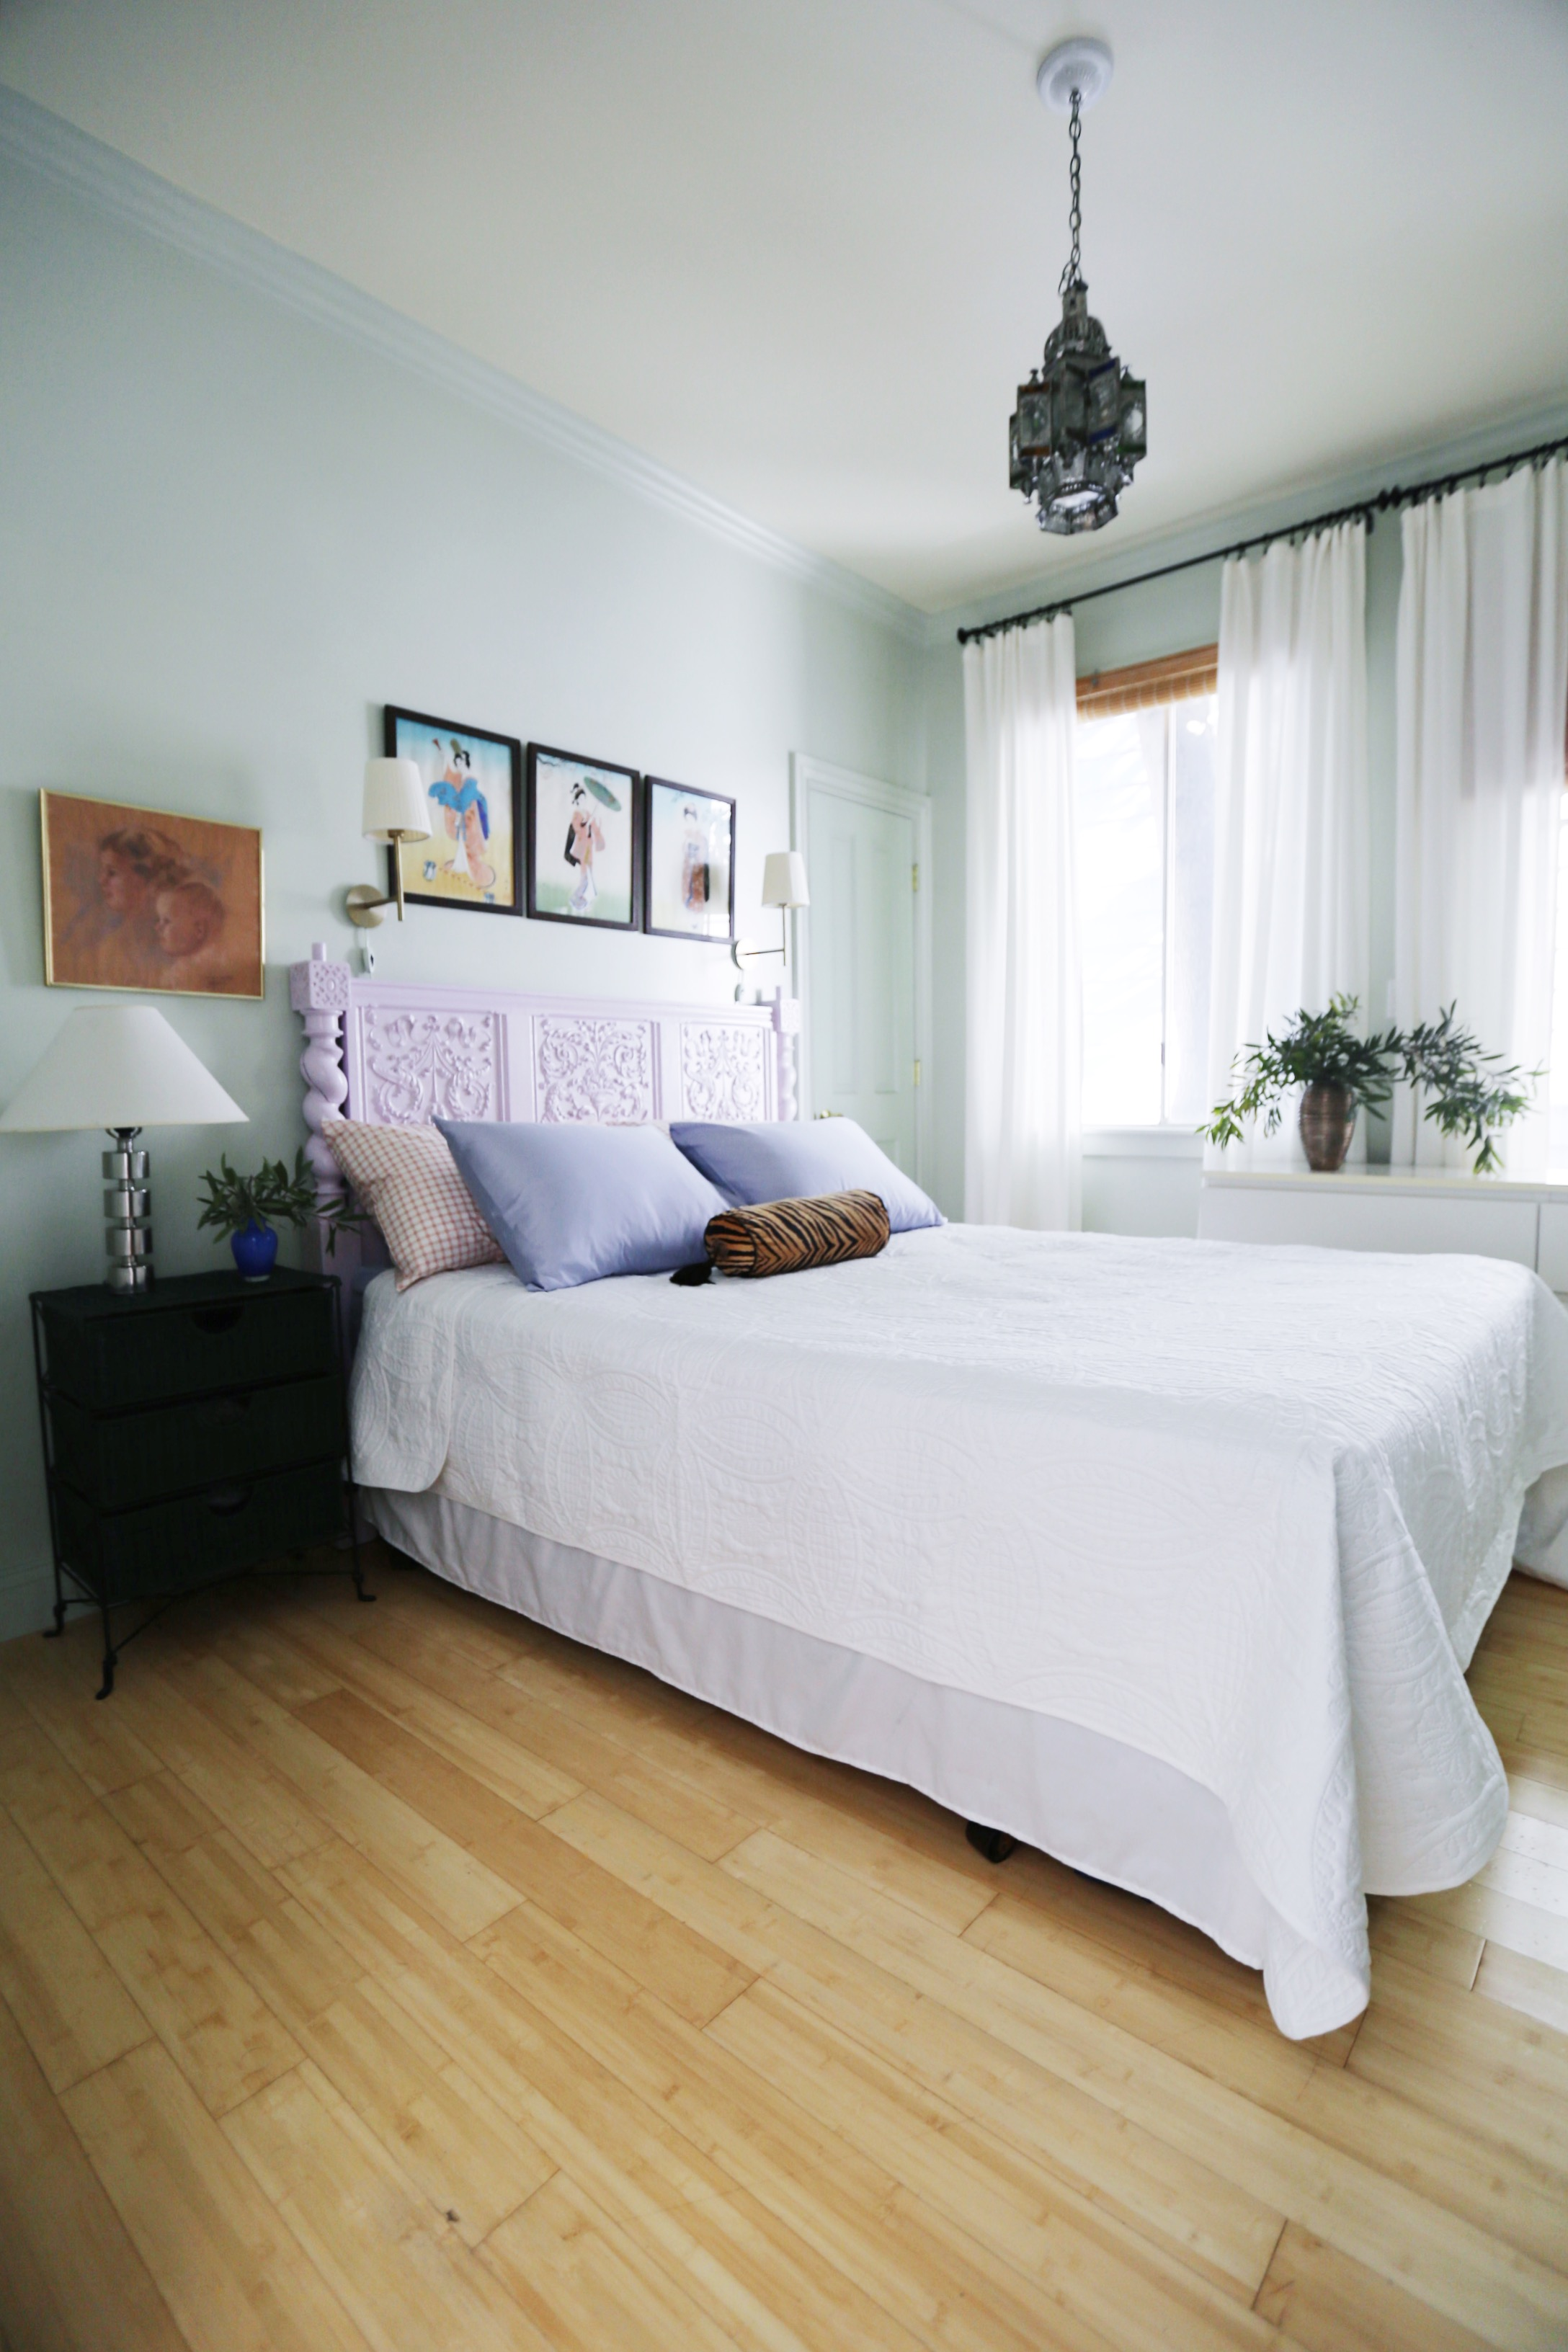 katie_gavigan_bedroom_07.jpg